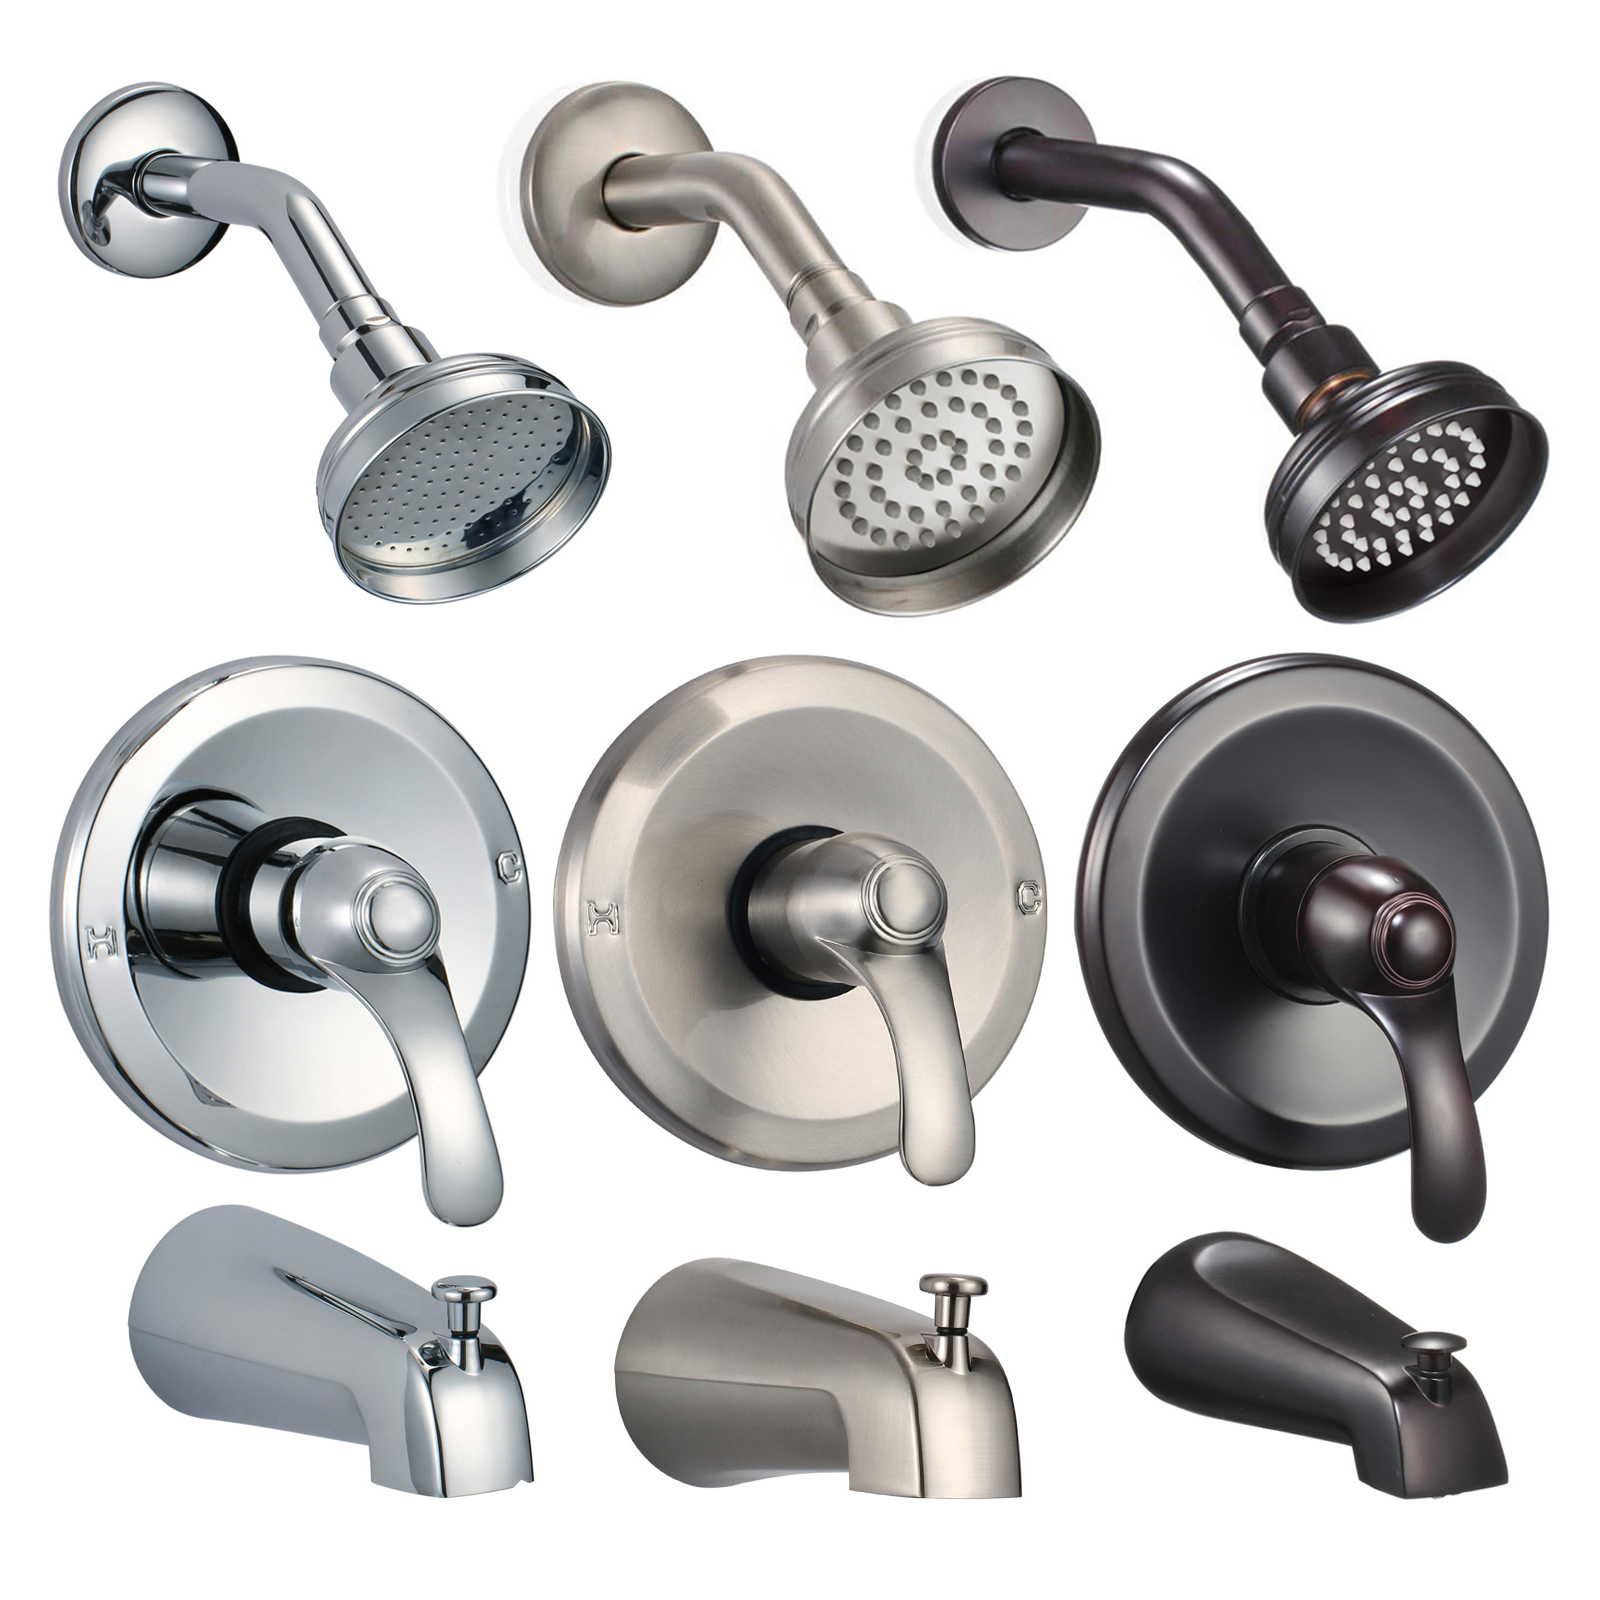 FREUER Ristorare Collection: Showerhead, Valve & Tub Spout - Multiple Finishes Available